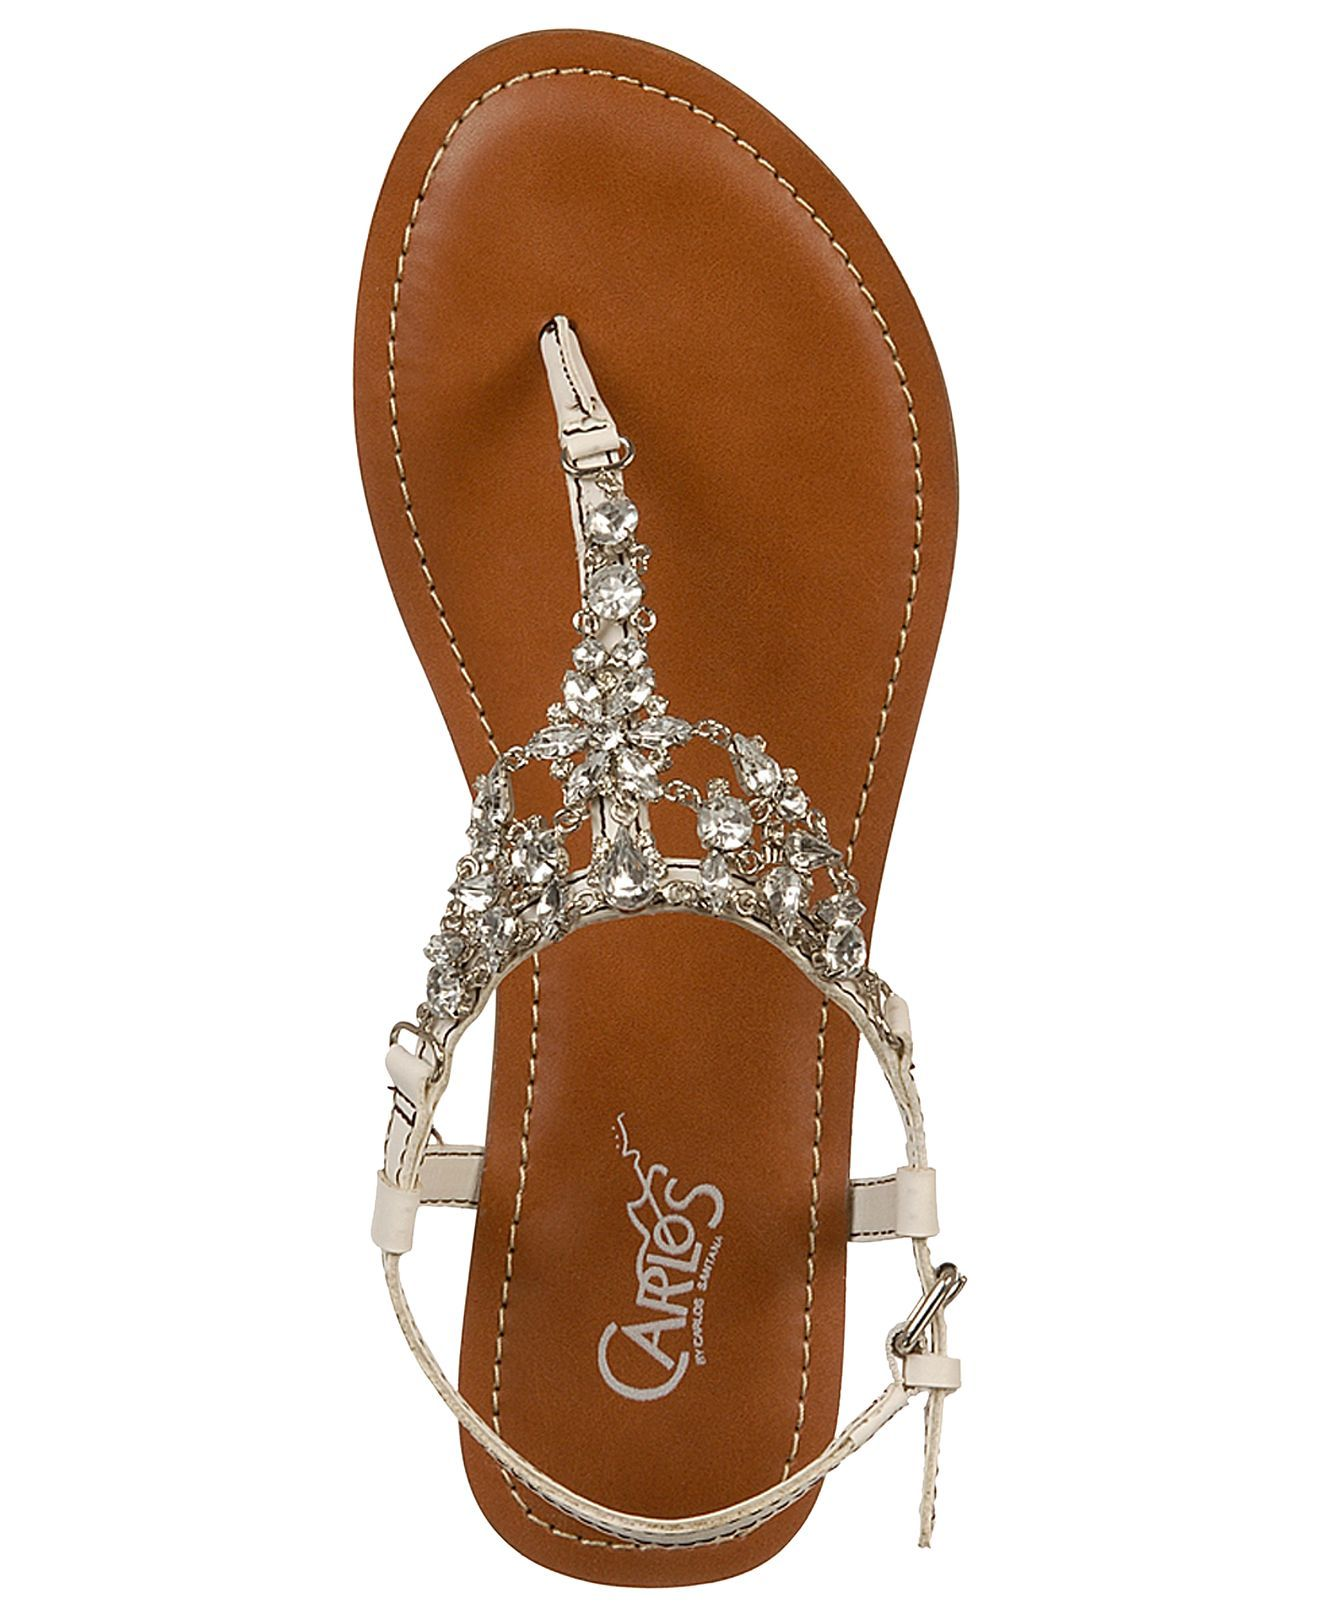 Carlos By Santana Shoes Flora Flat Sandals Pretty Would Be Beautiful